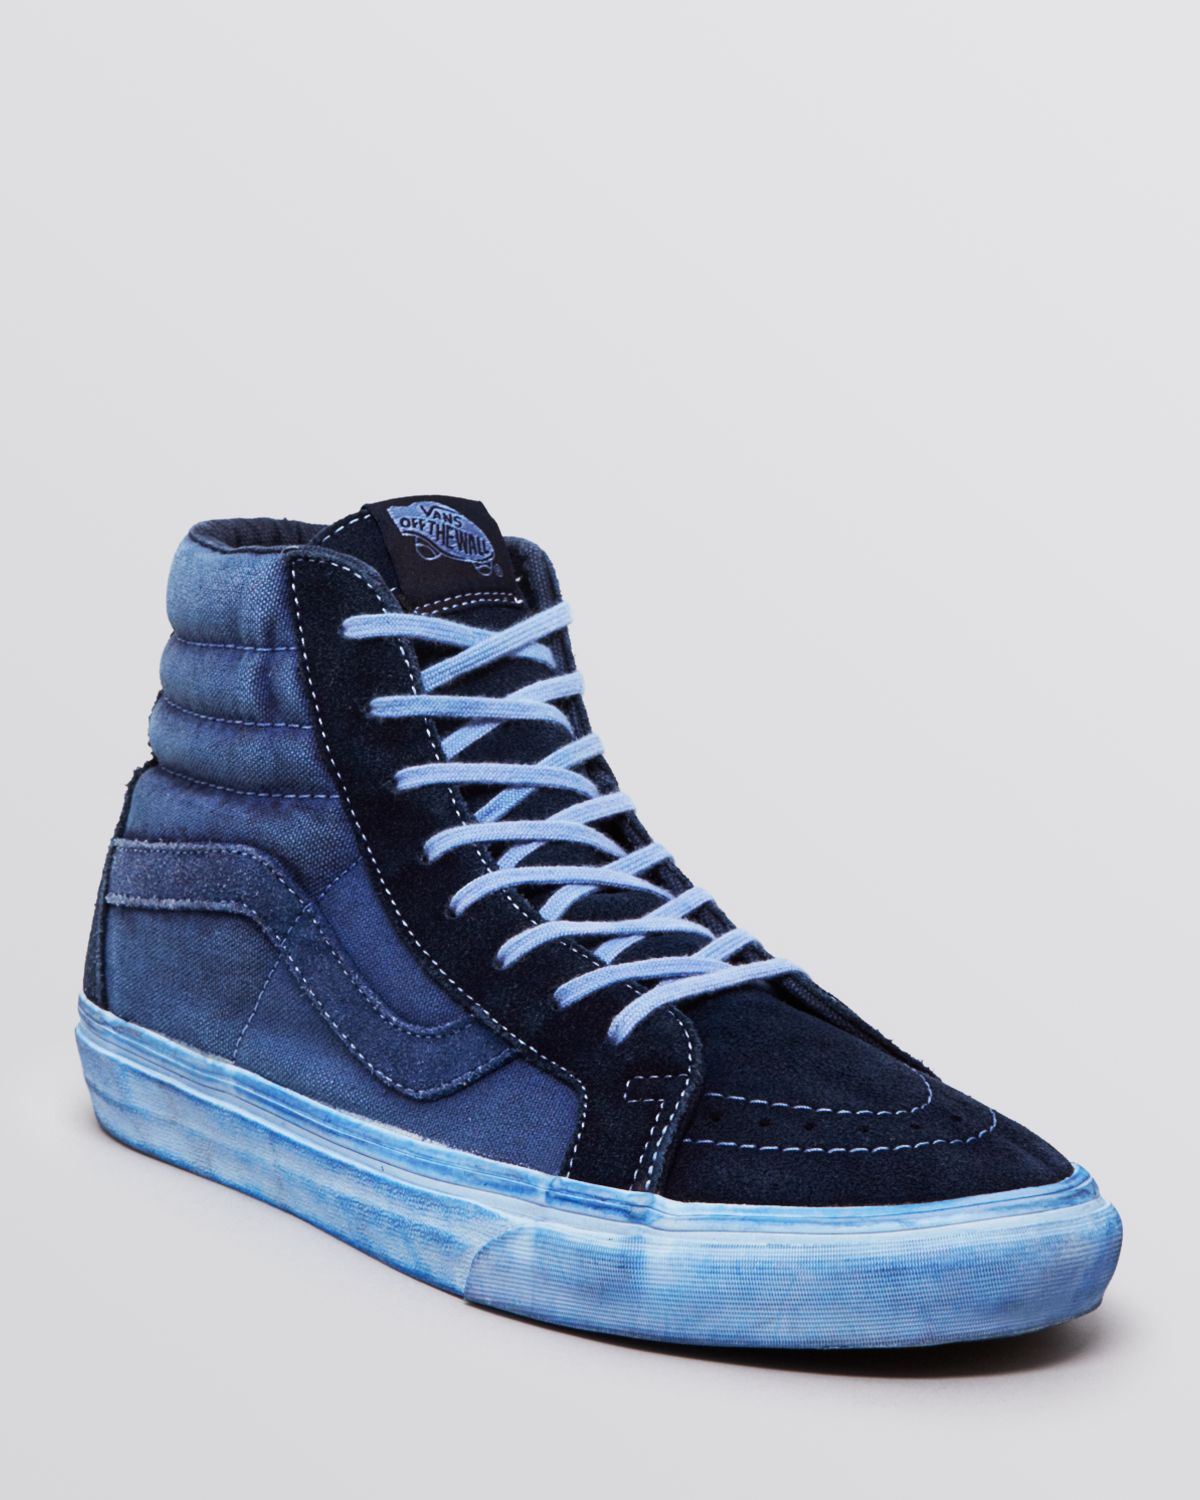 Vans Sk8 High Top Reissue Ca Sneakers In Blue For Men Lyst